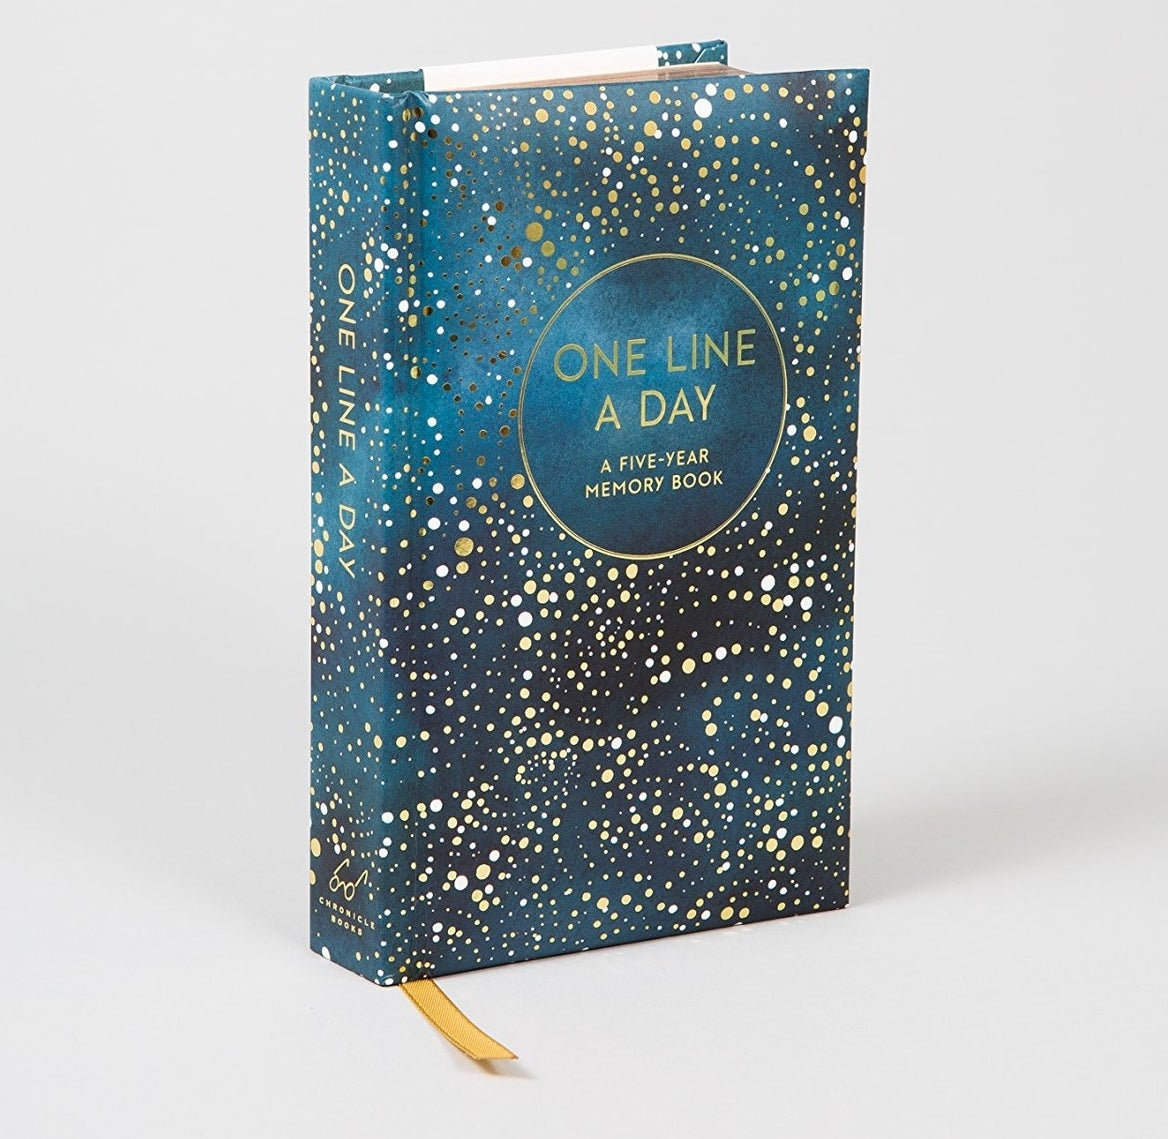 The journal with a star-like cover print